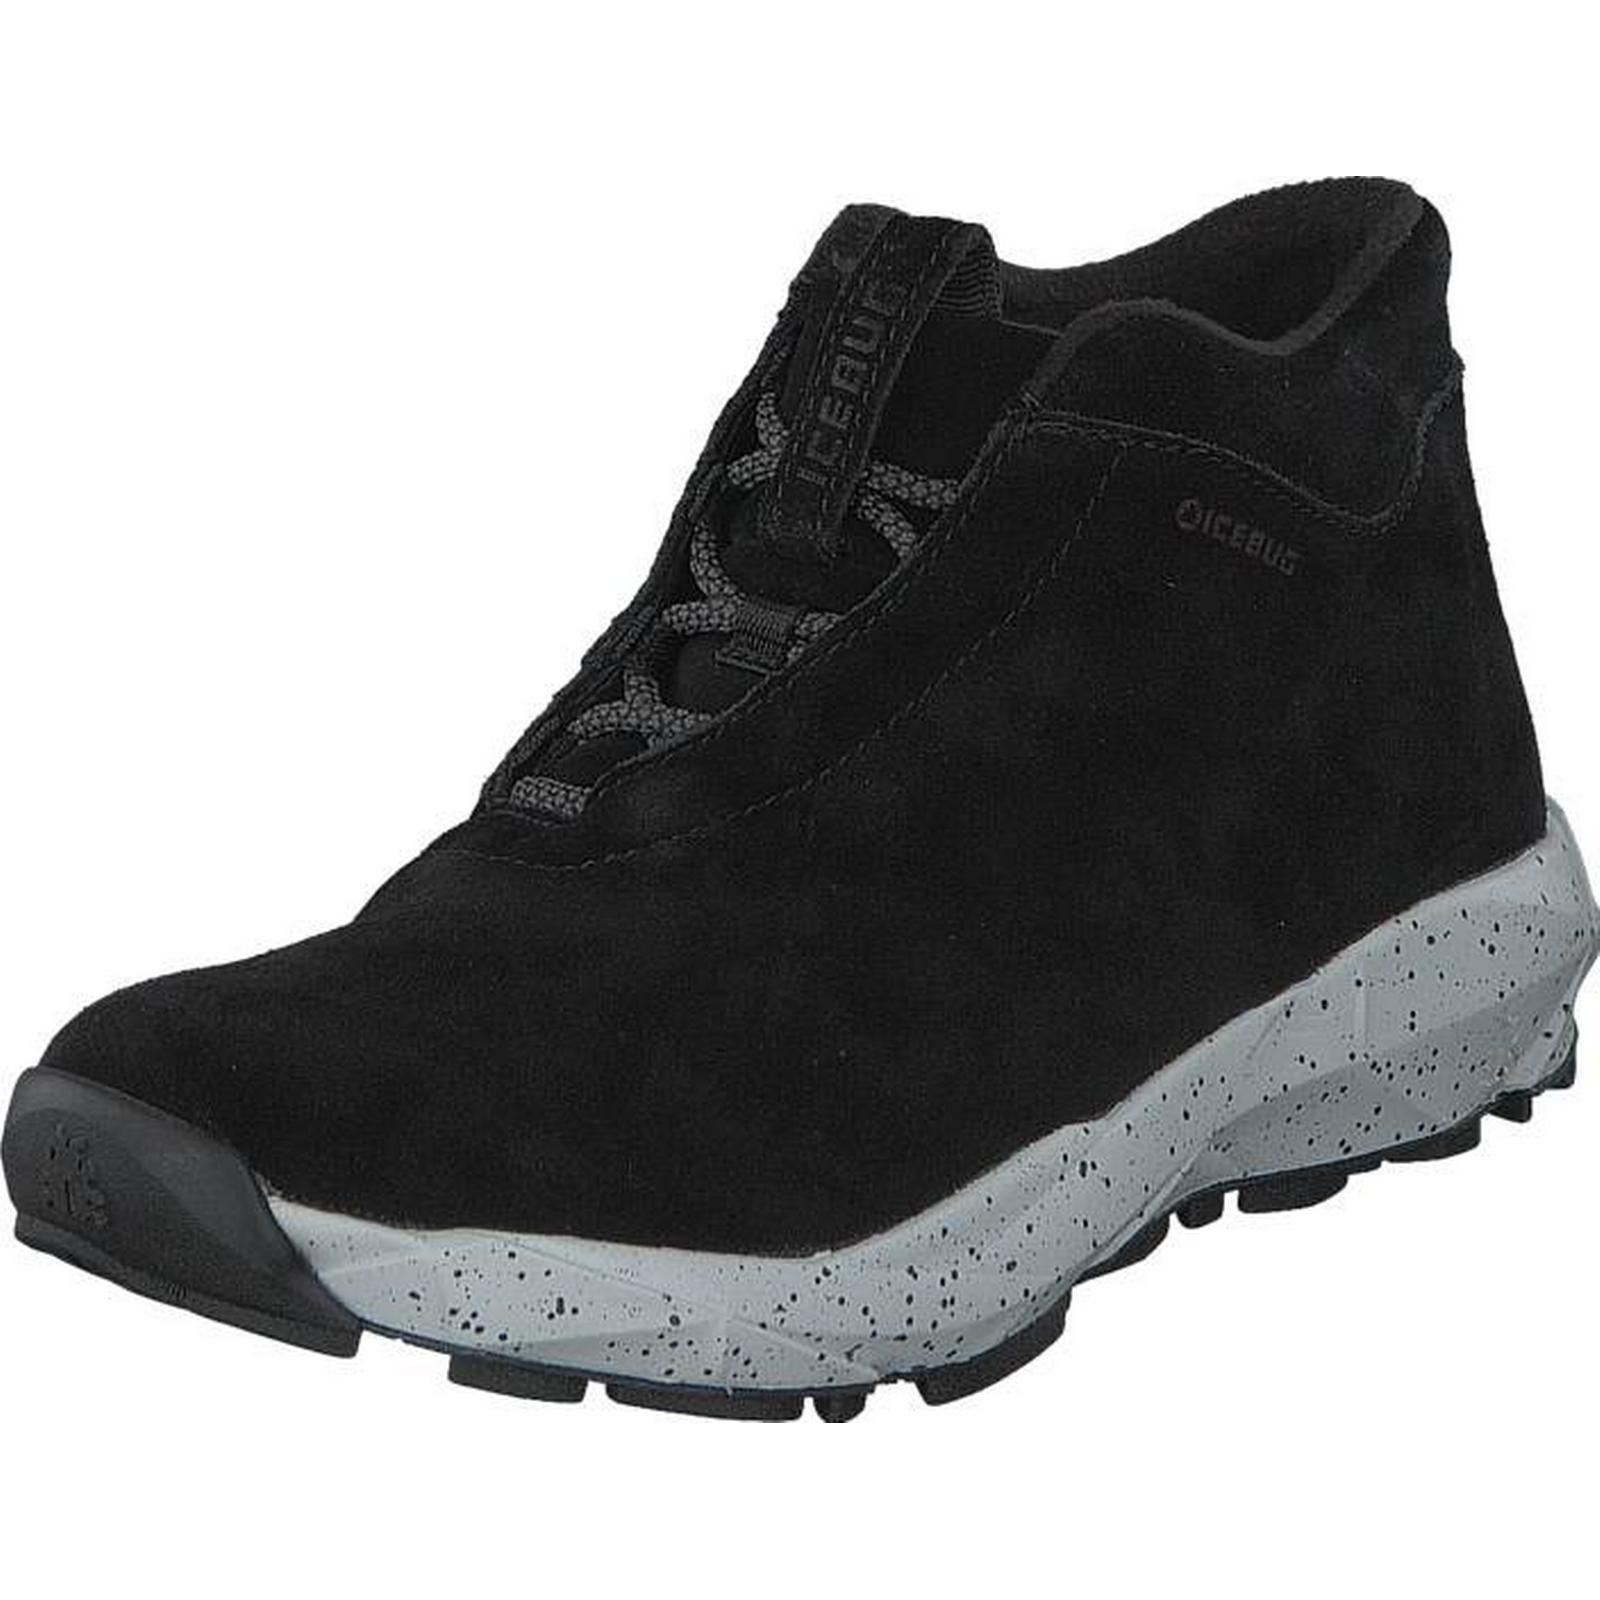 Icebug Now4 W BUGweb RB9X Black Black, Shoes, Shoes, Black, Boots & Chelseas, Hiking Boots, Black, Female, 37 93b948